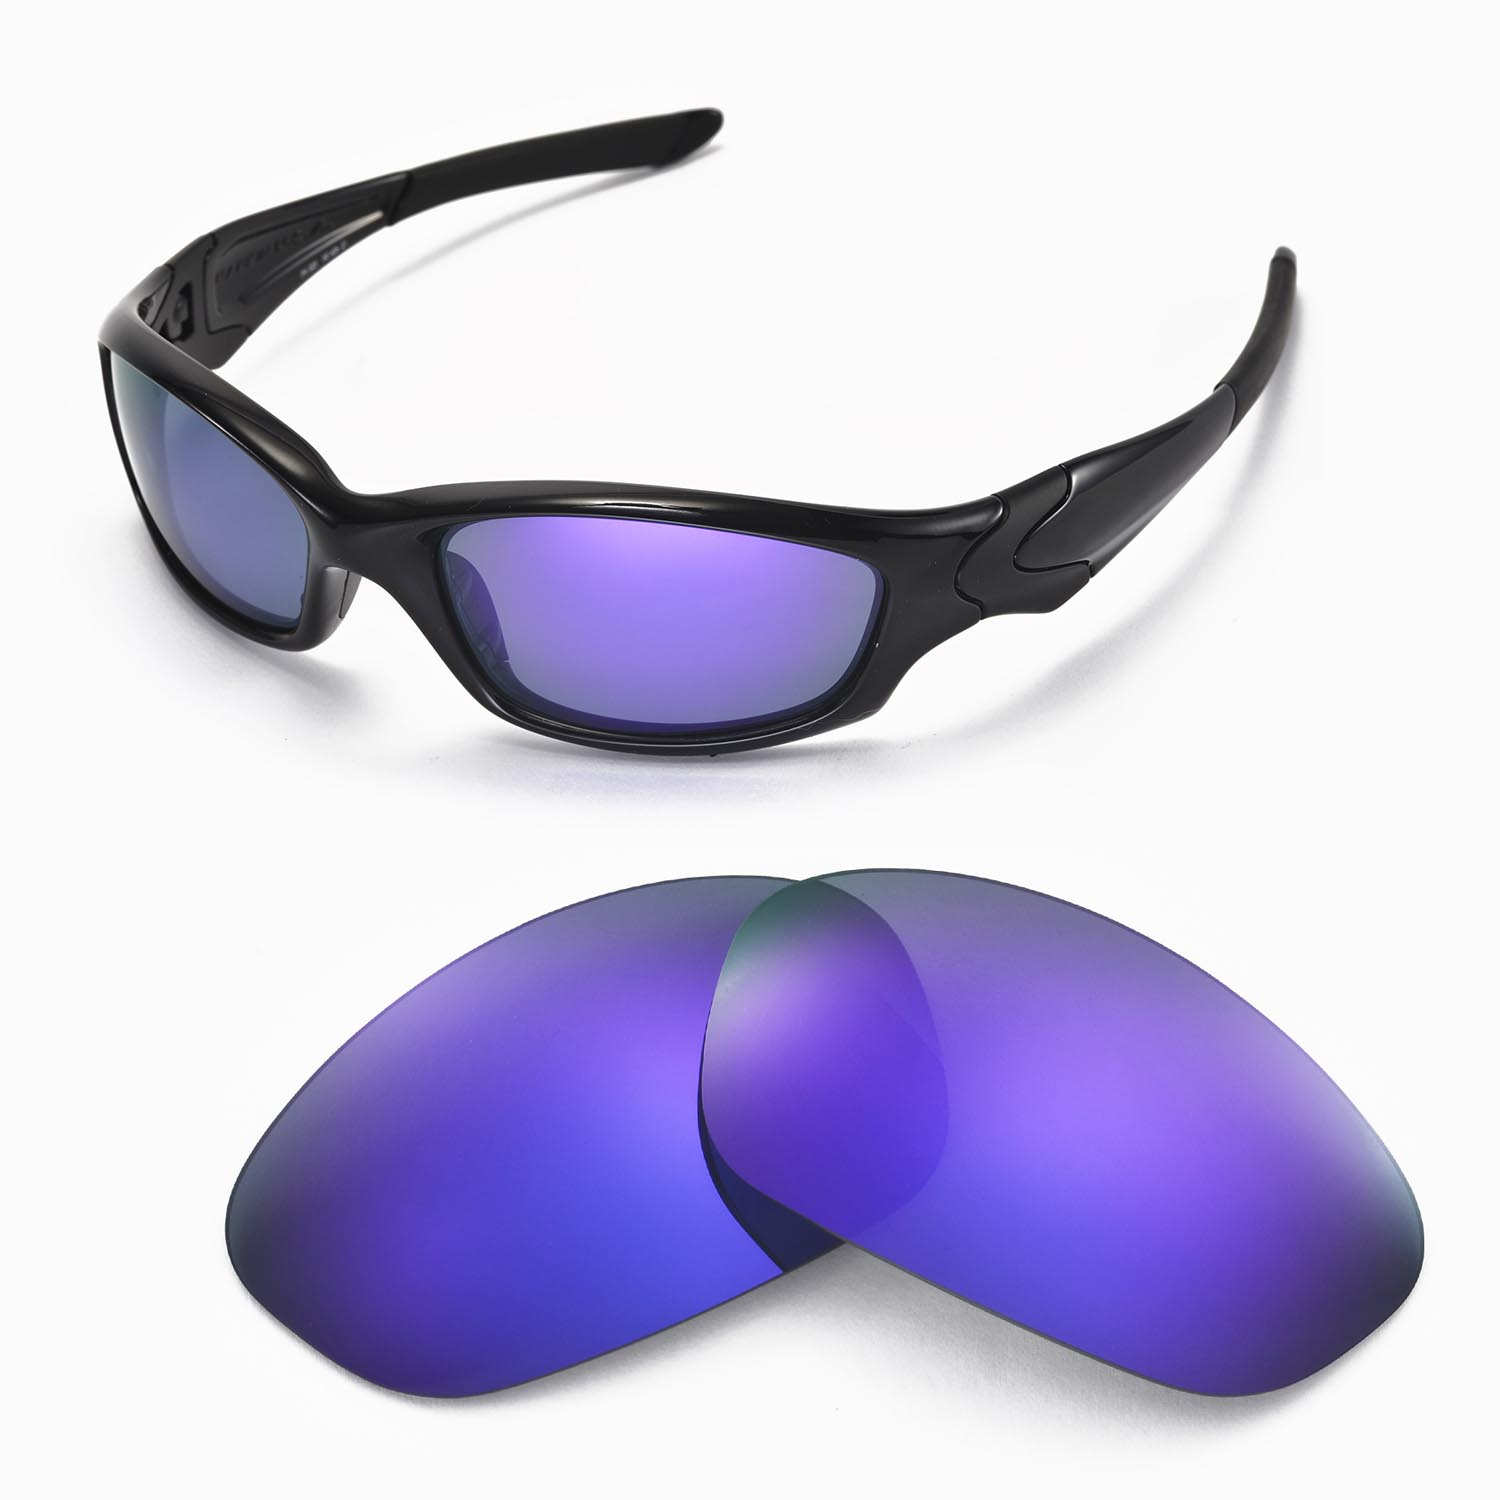 HKUCO Purple/Transition/Photochromic Polarized Replacement Lenses For f9dGL4o3rF Straight Jacket 1999 Sunglasses HnxpCBYB